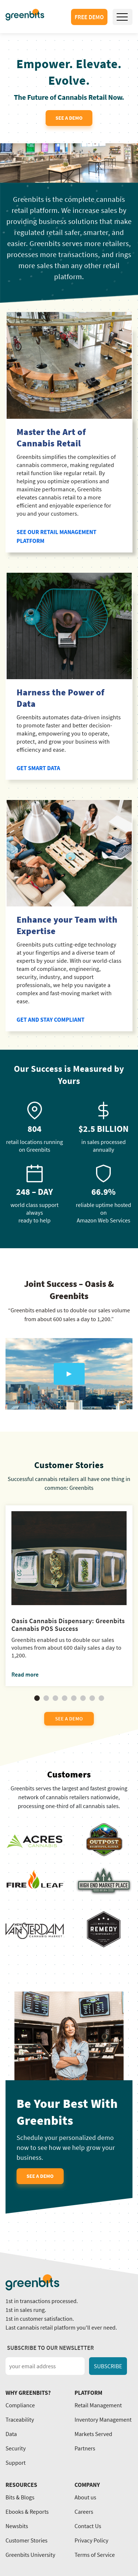 Example of Design for Business & Industrial, Mobile Landing Page by greenbits.com | Mobile Landing Page Design